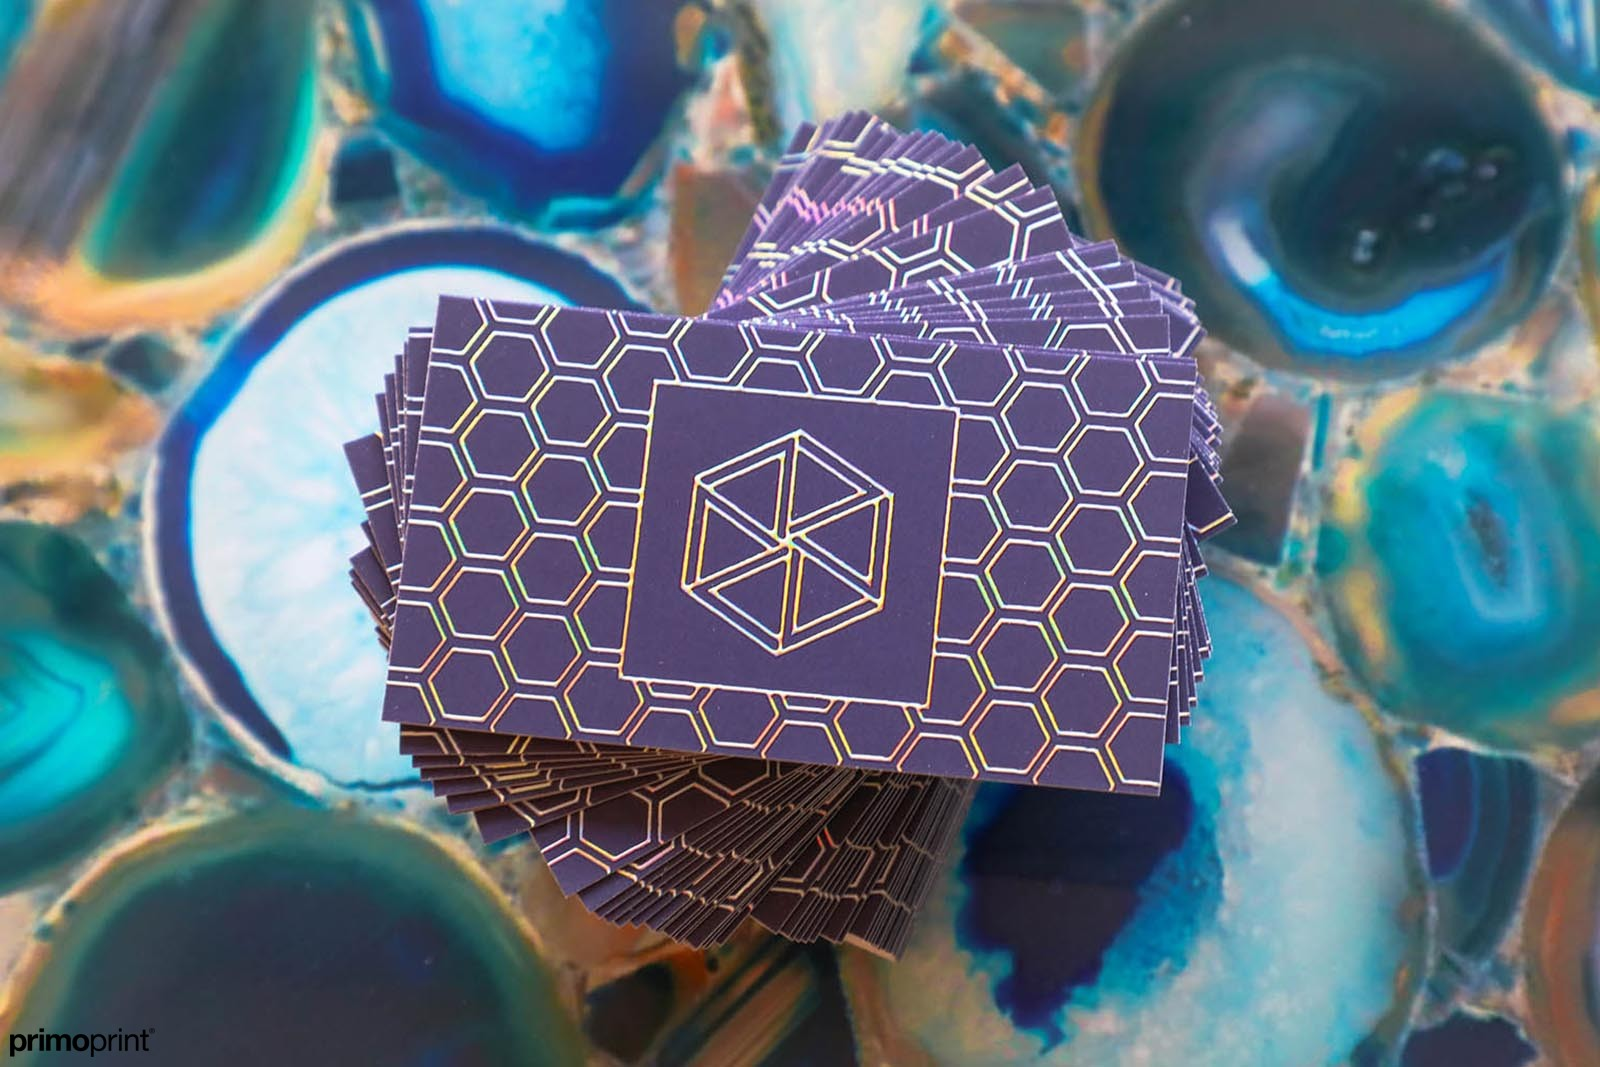 Enhance your business card design by including Holographic Foil